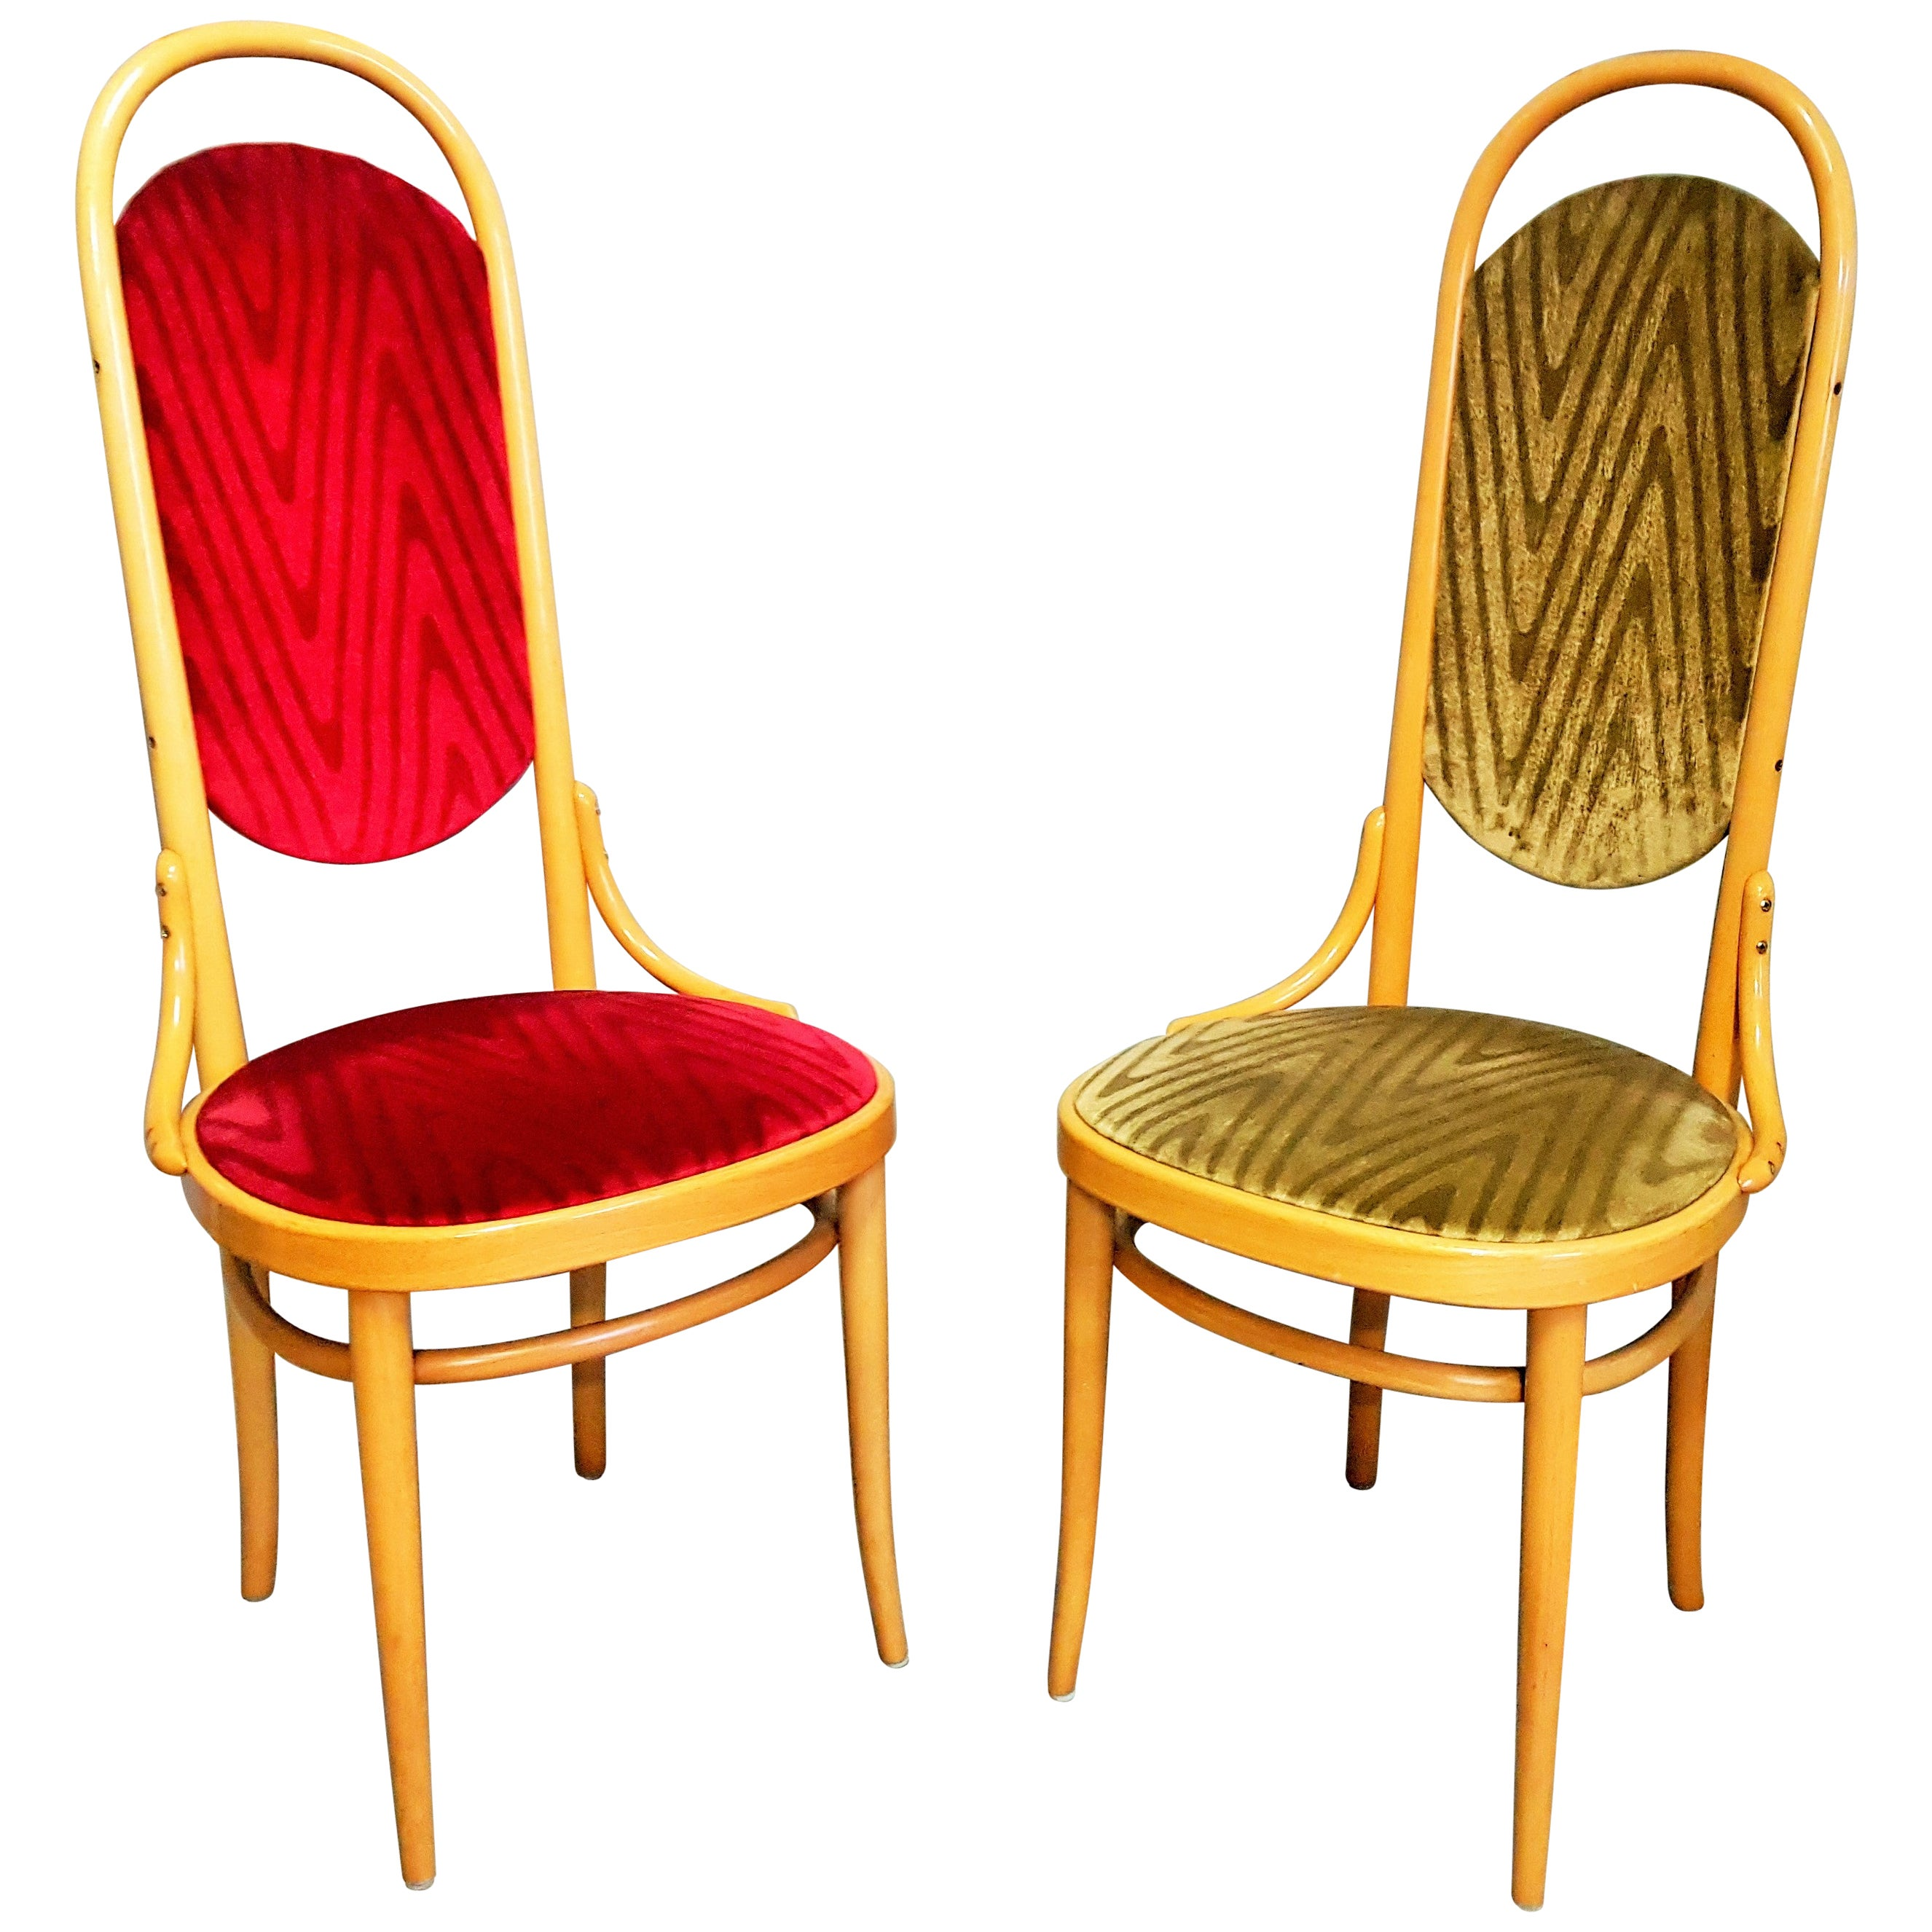 Pair of Bentwood High Back Dining Chairs by Thonet